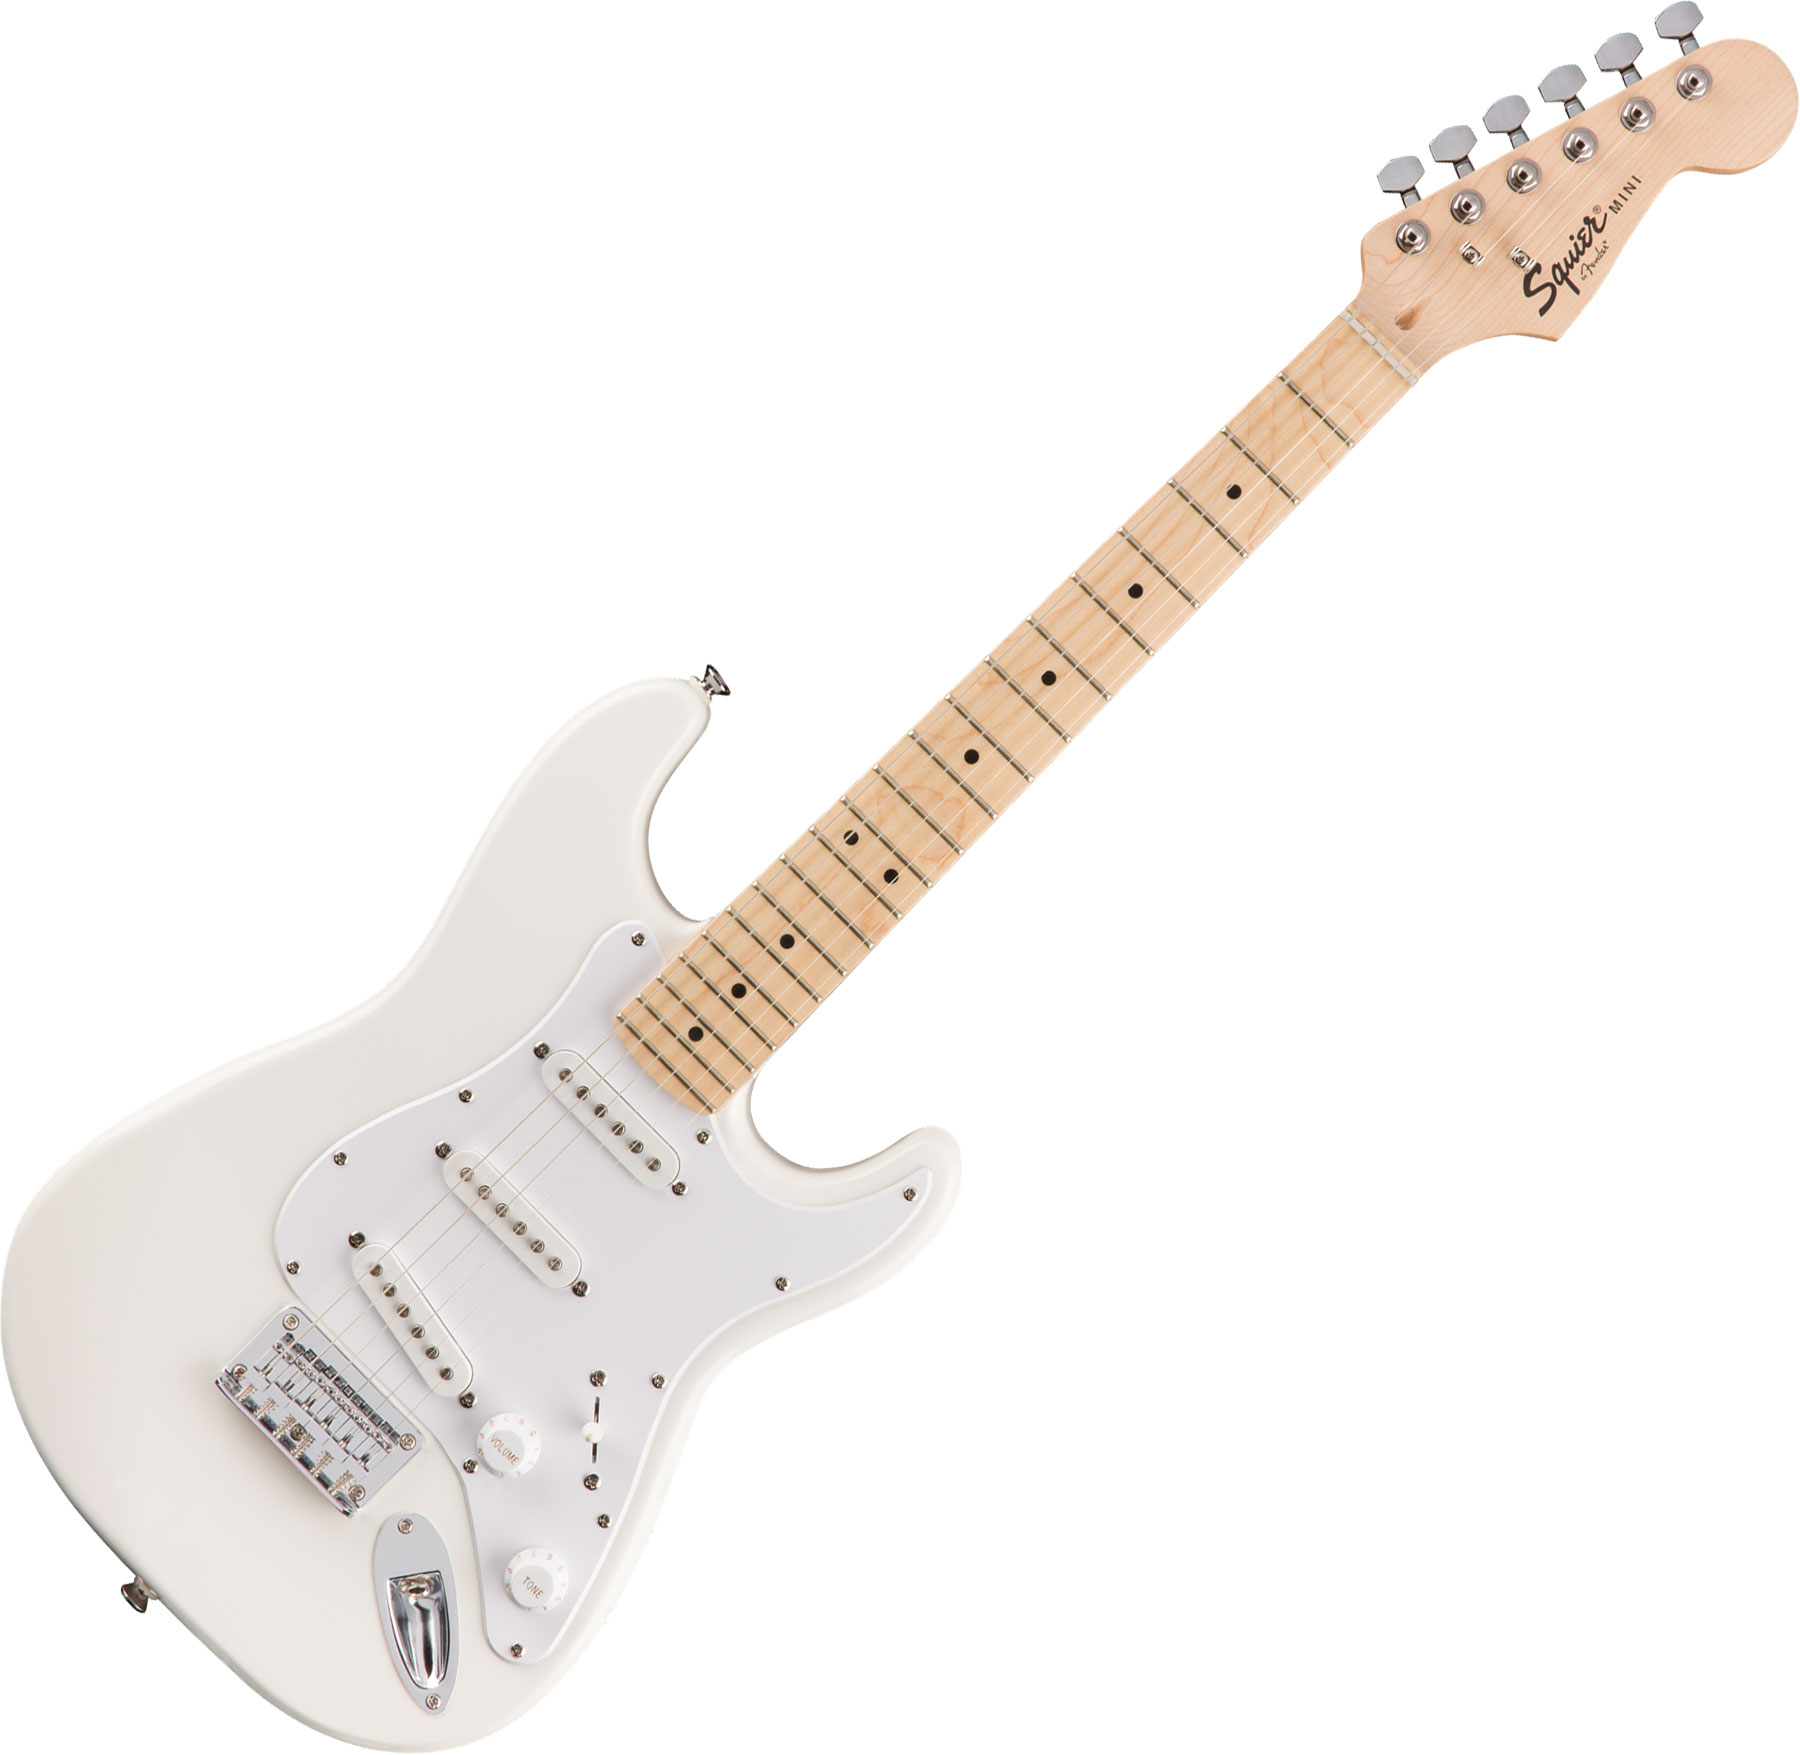 f387c72d0a Squier Mini Strat V2 FSR (MN) - olympic white. Electric guitar for kids